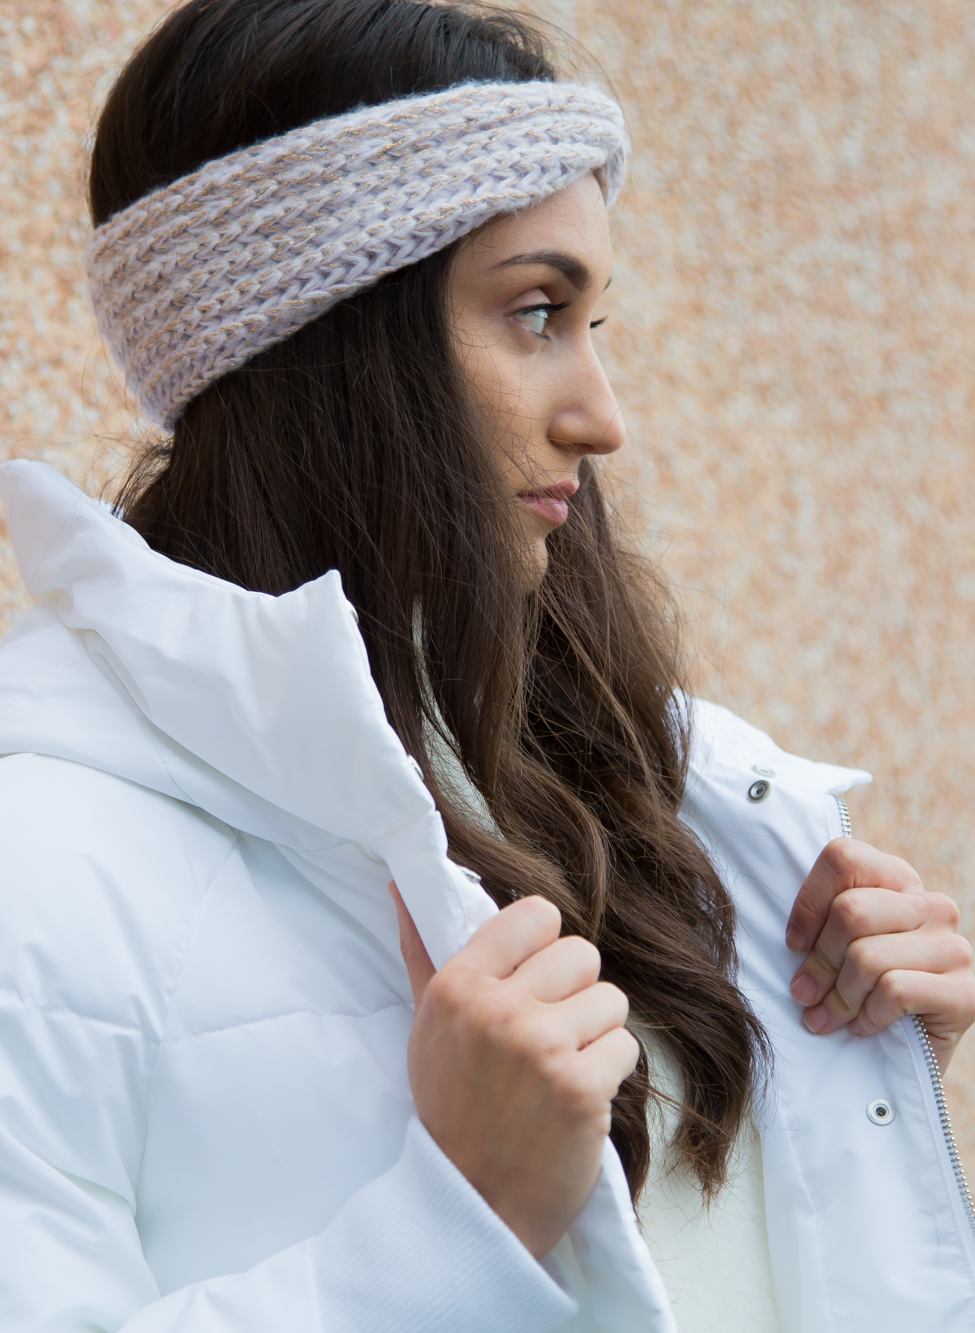 IL BIANCO D'INVERNO outifit invernale